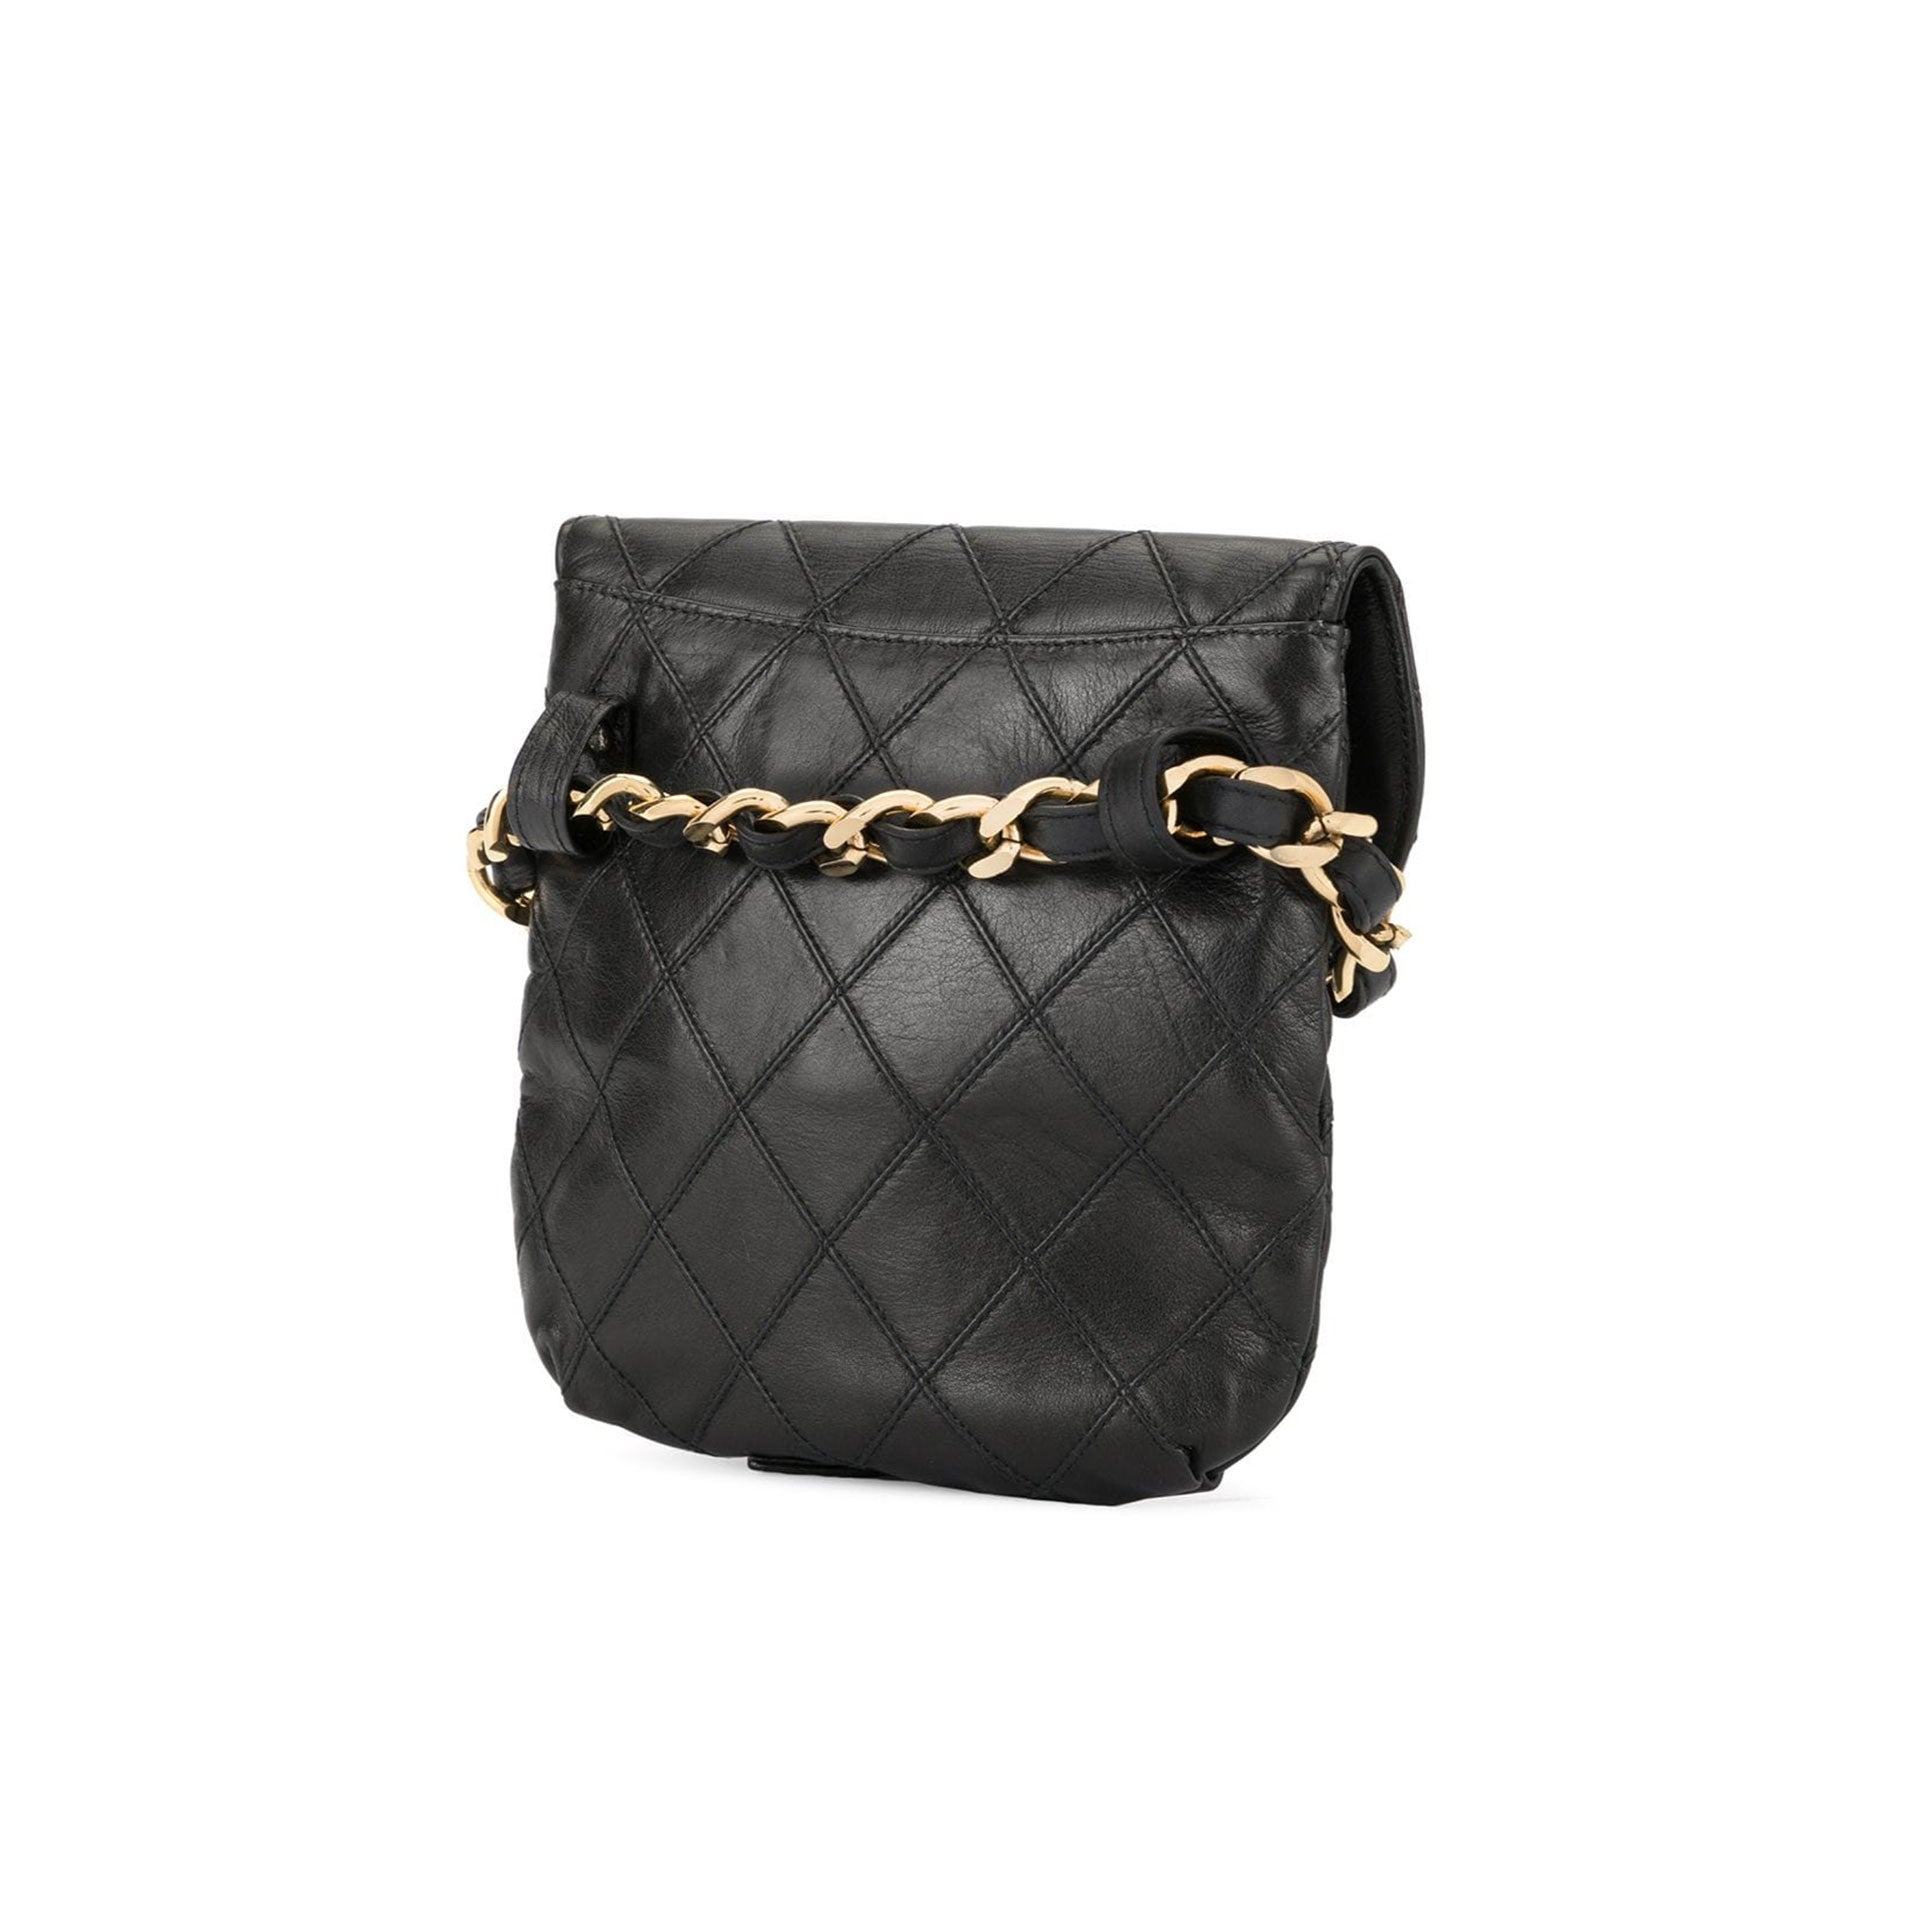 Chanel Vintage Waist Bag Fanny Pack